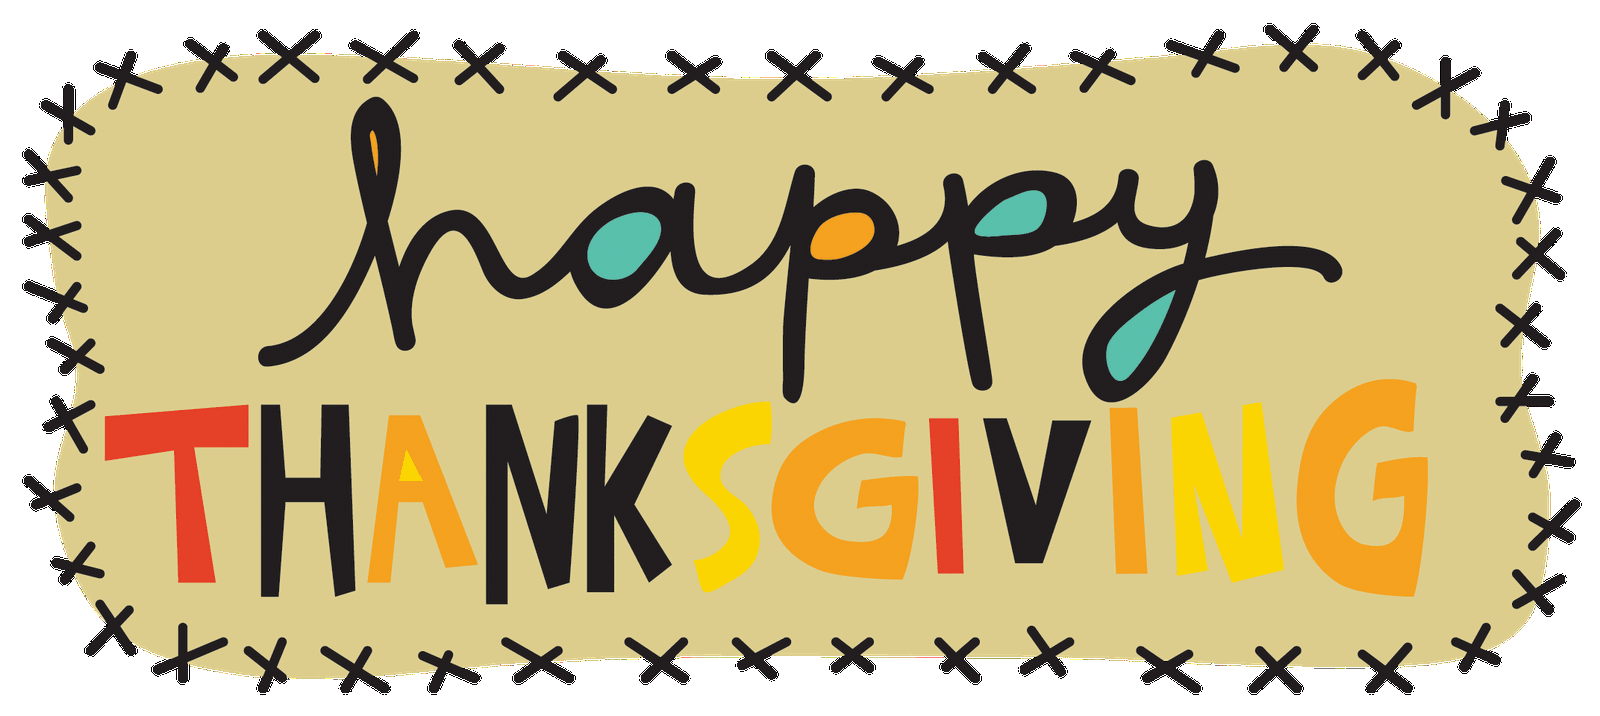 Happy thanksgiving clipart count your blessing. Pretty jpg stock rr